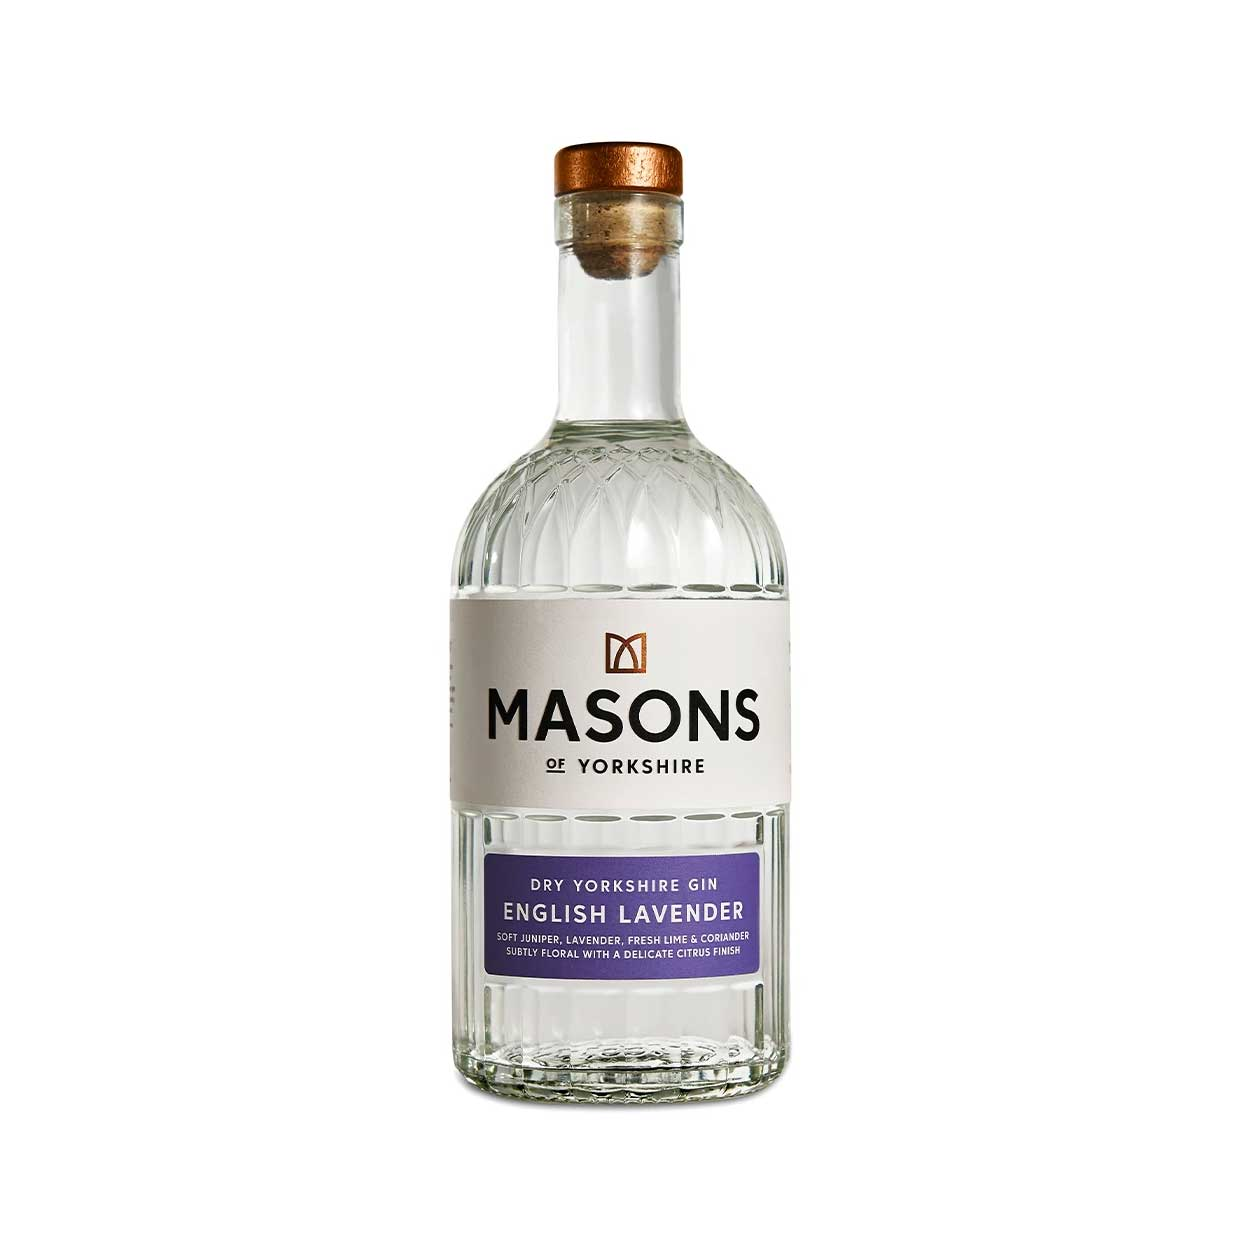 Masons English Lavender Gin